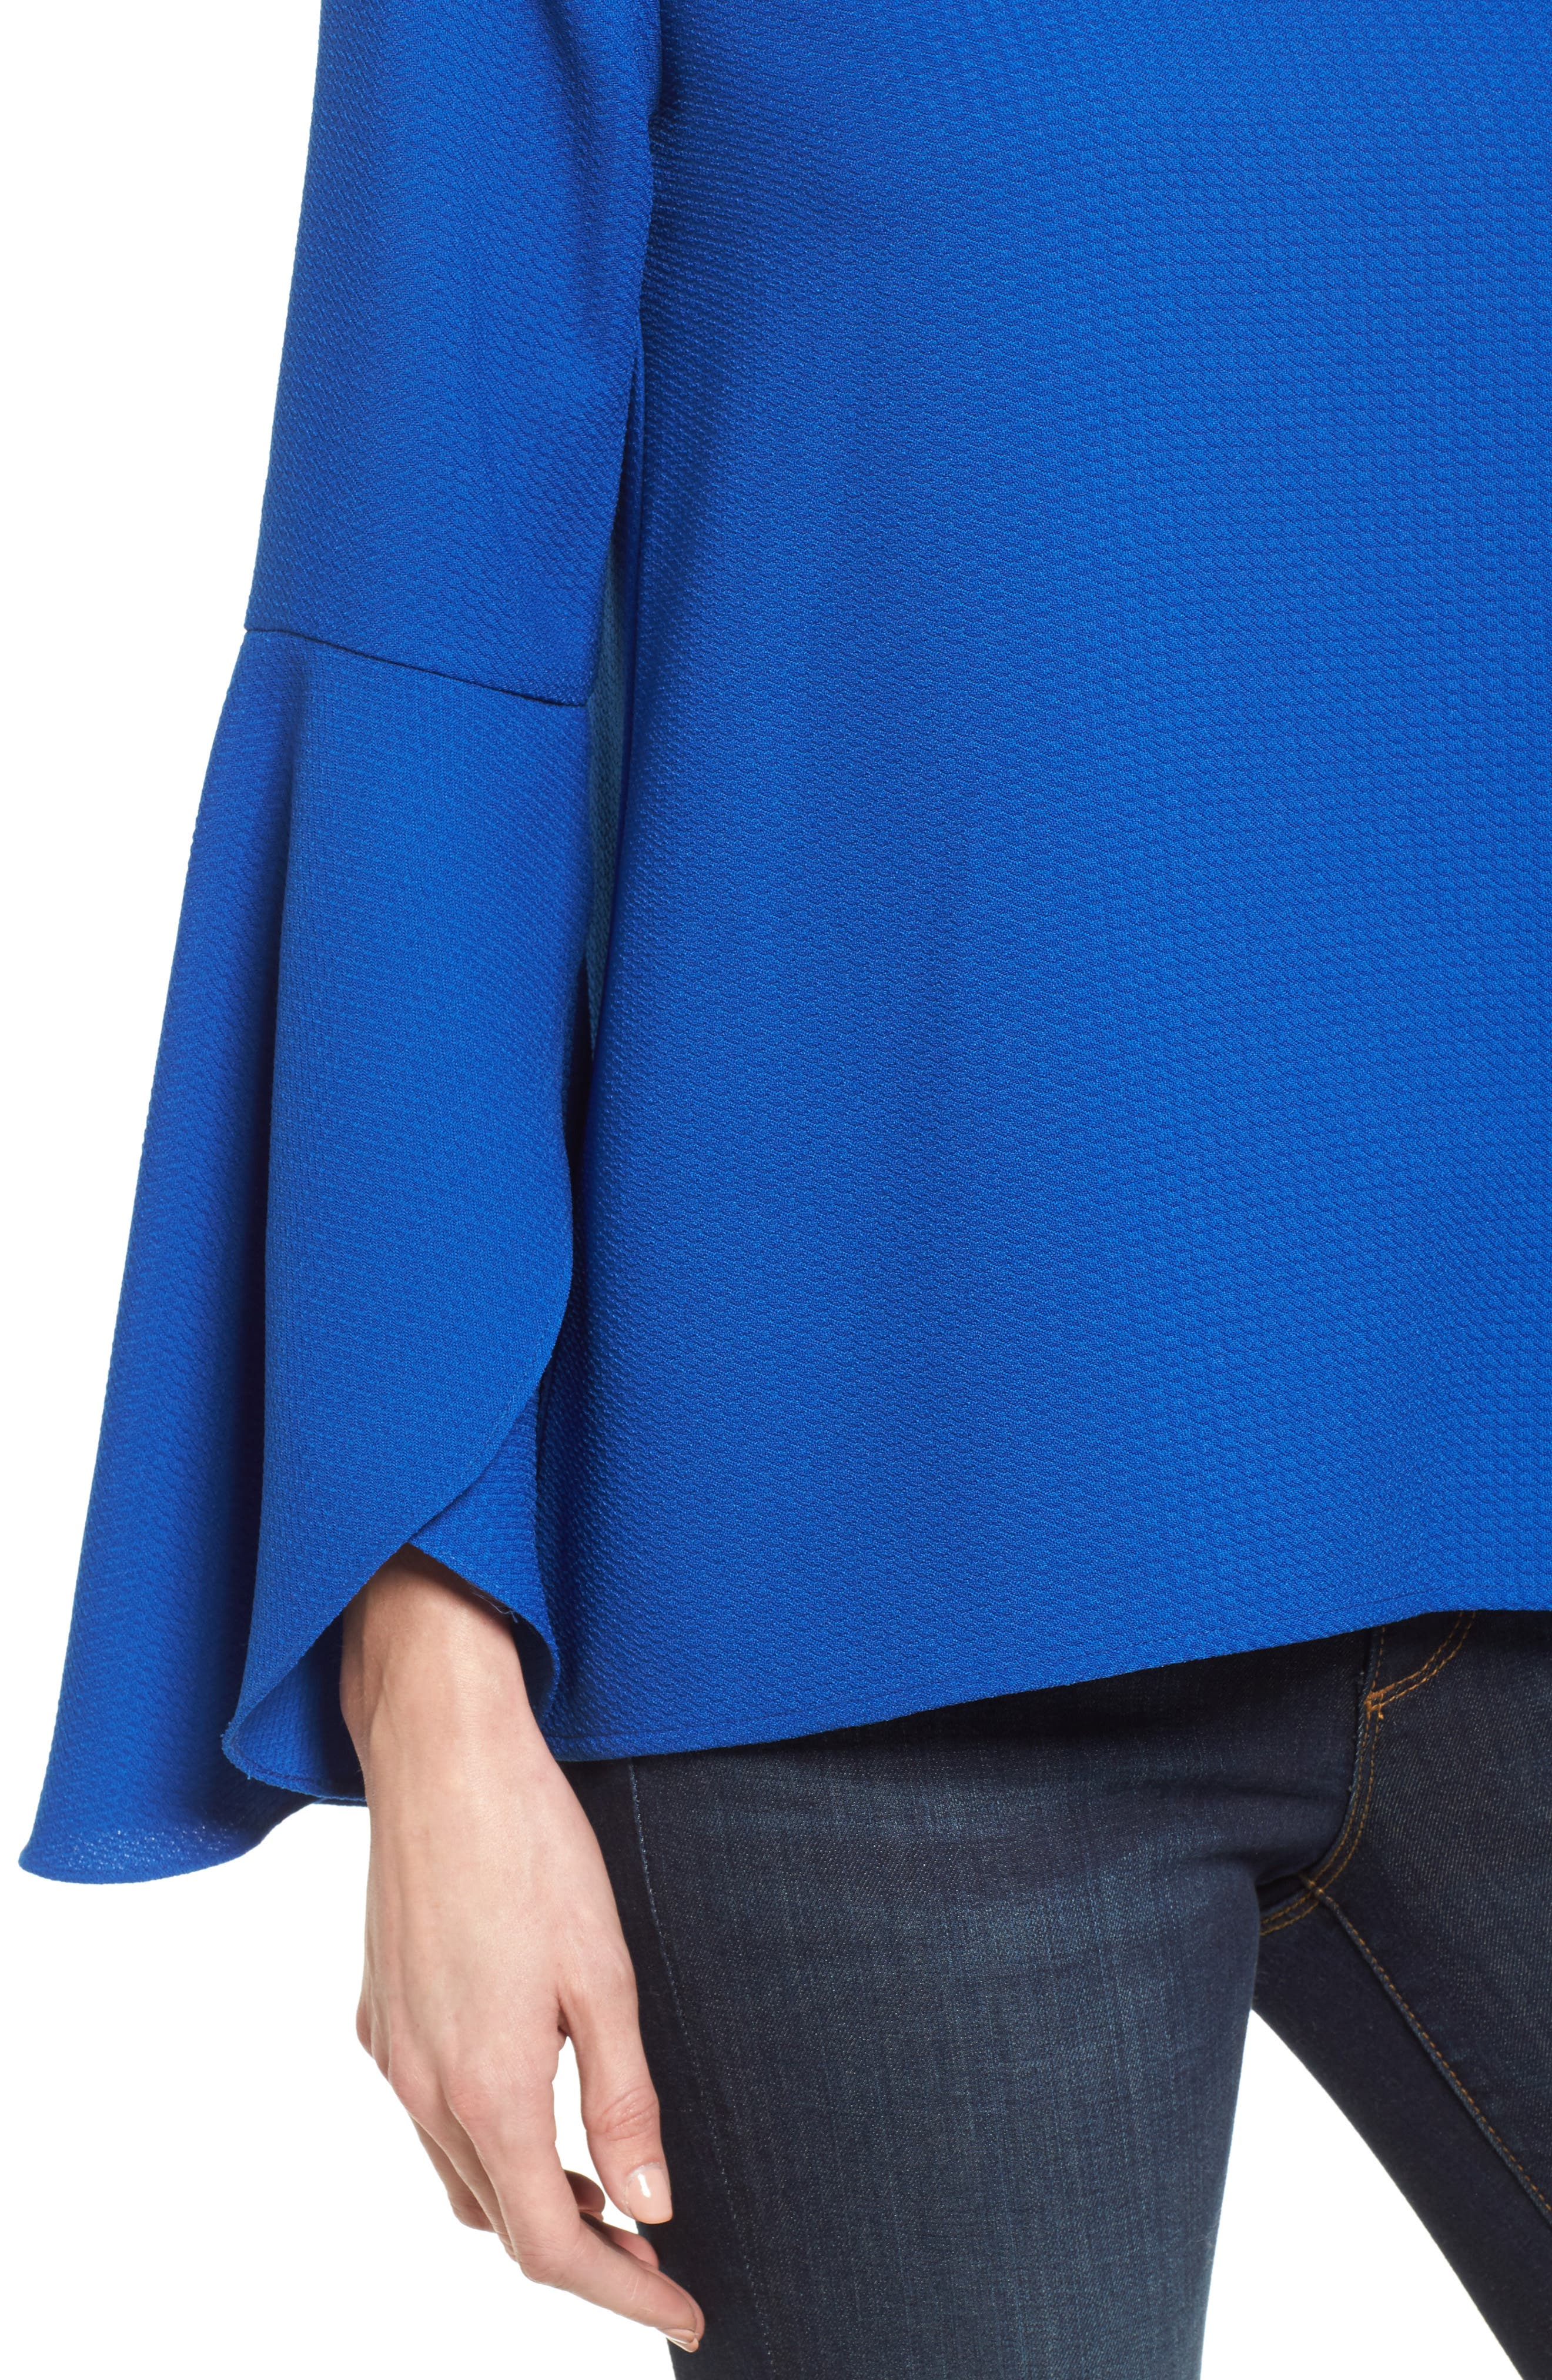 Bell Sleeve Top,                             Alternate thumbnail 4, color,                             420